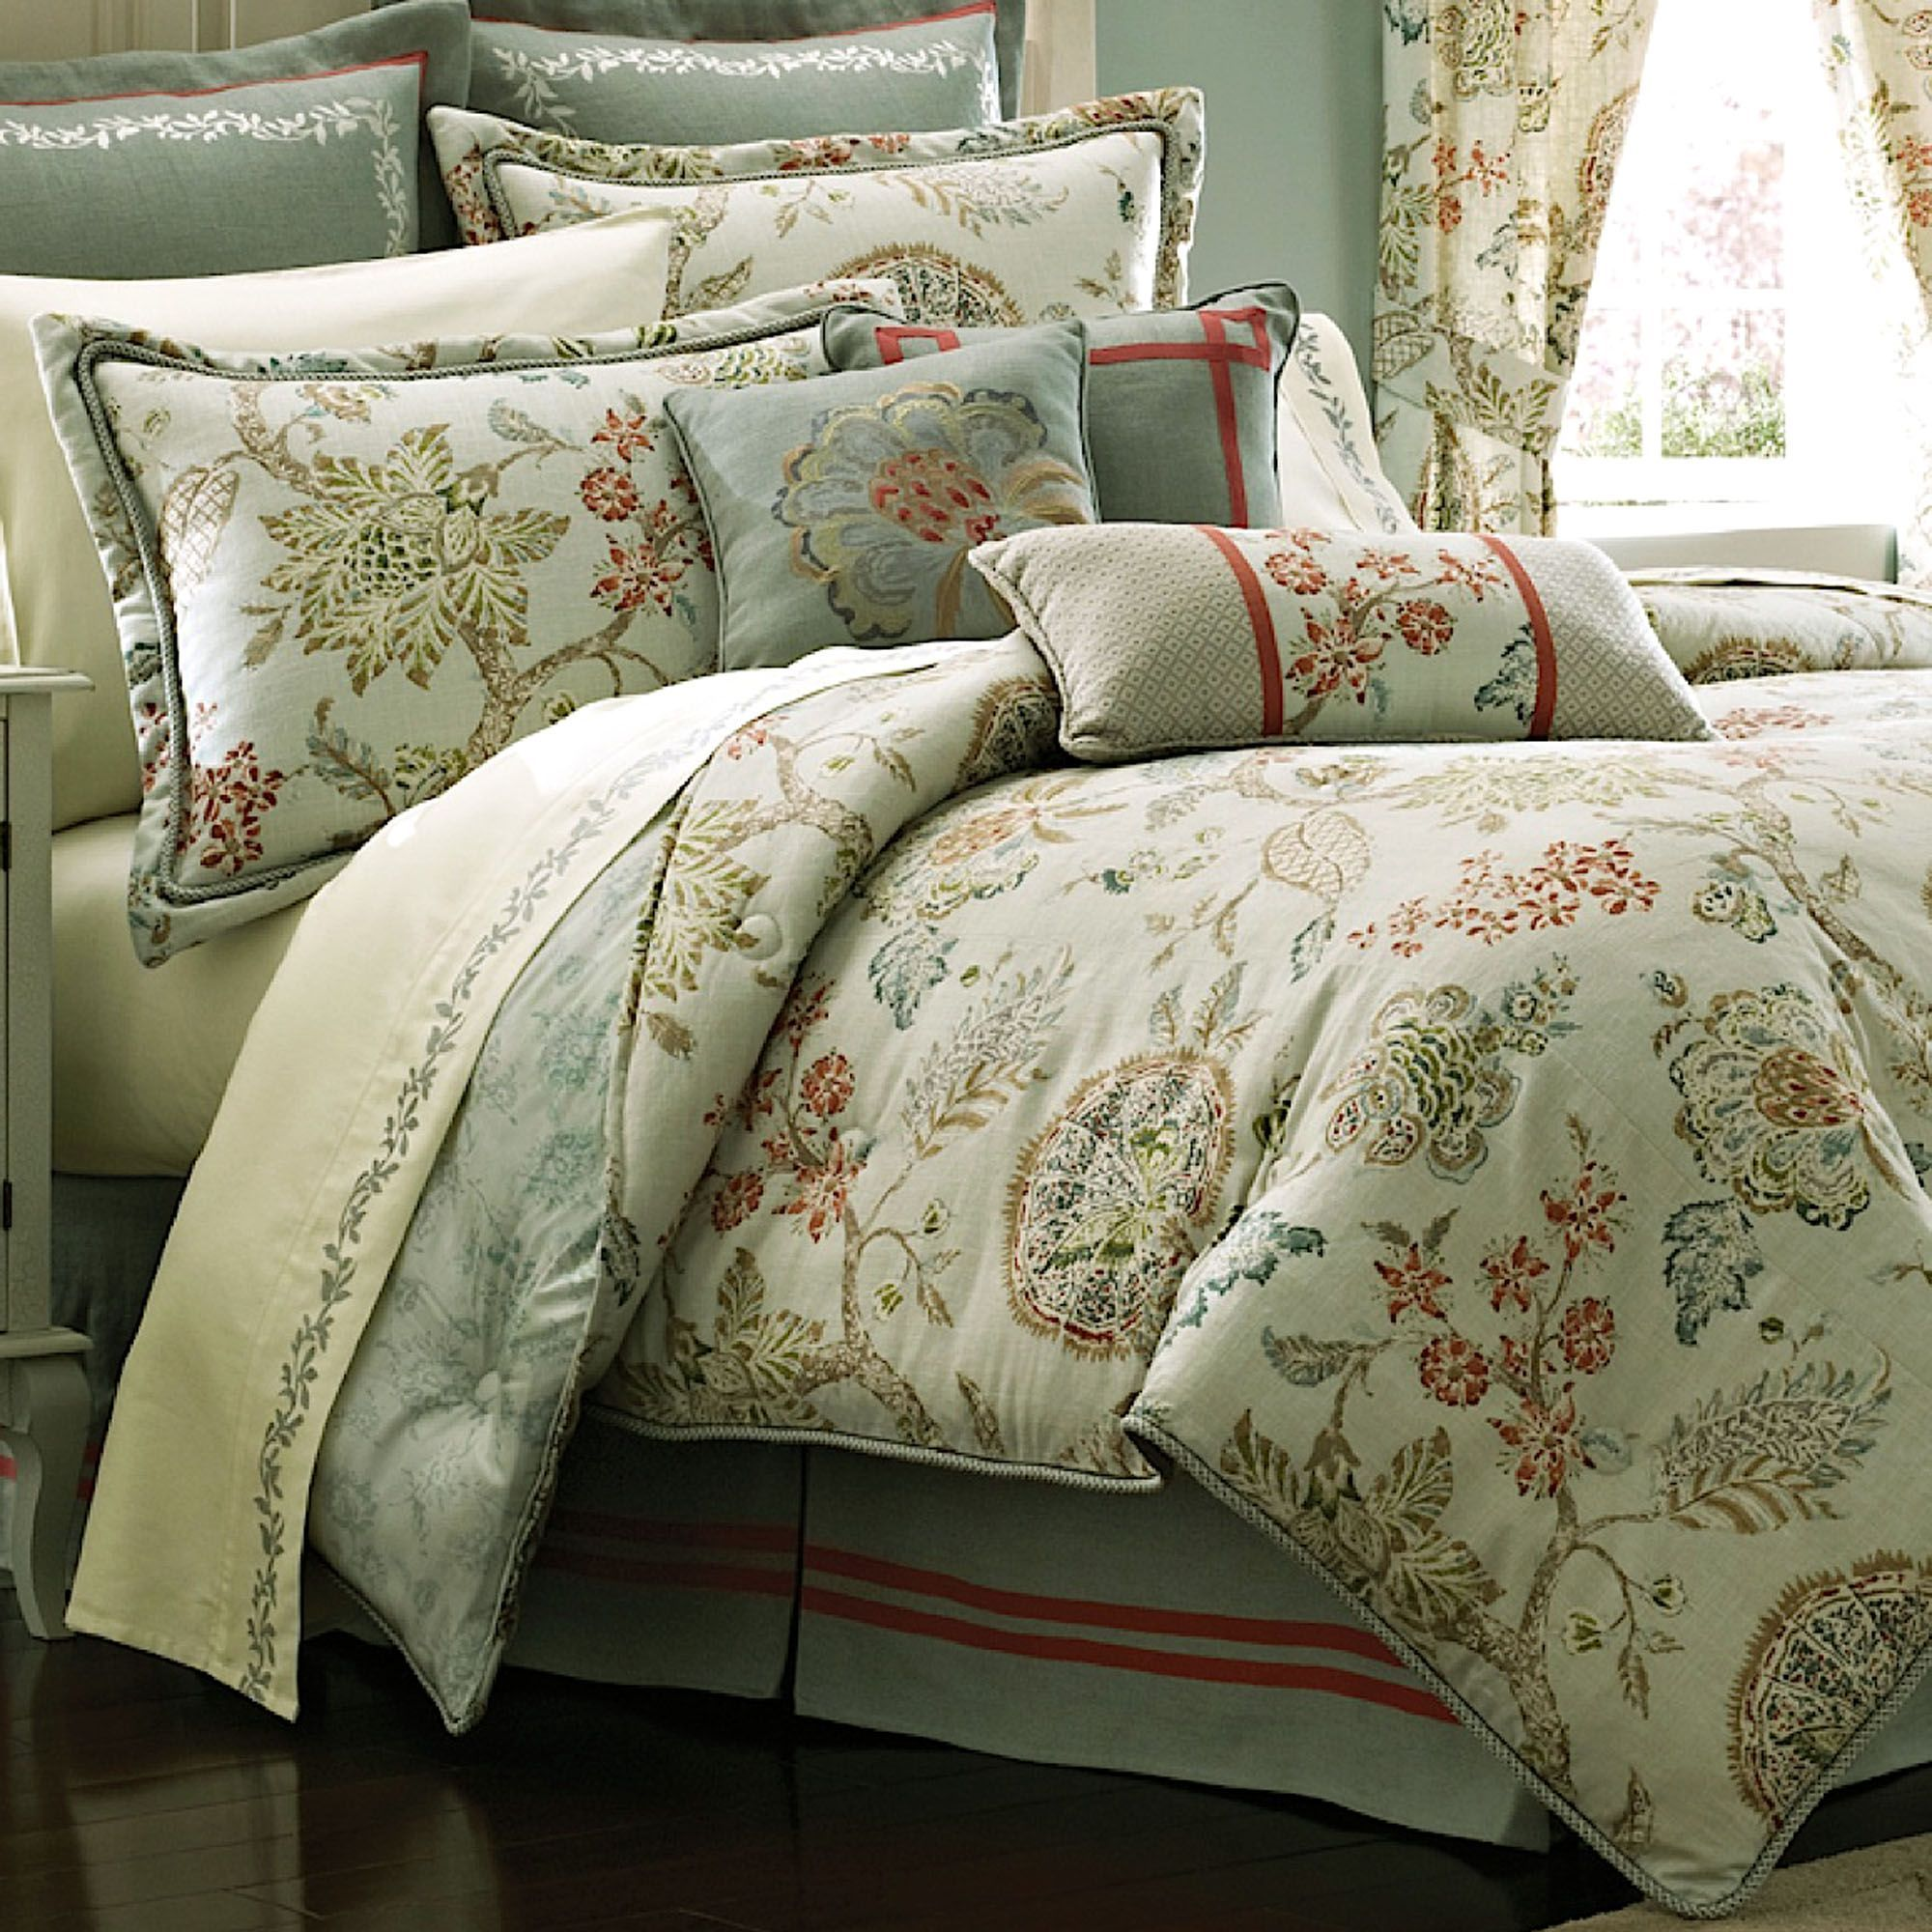 Retreat floral comforter bedding by croscill